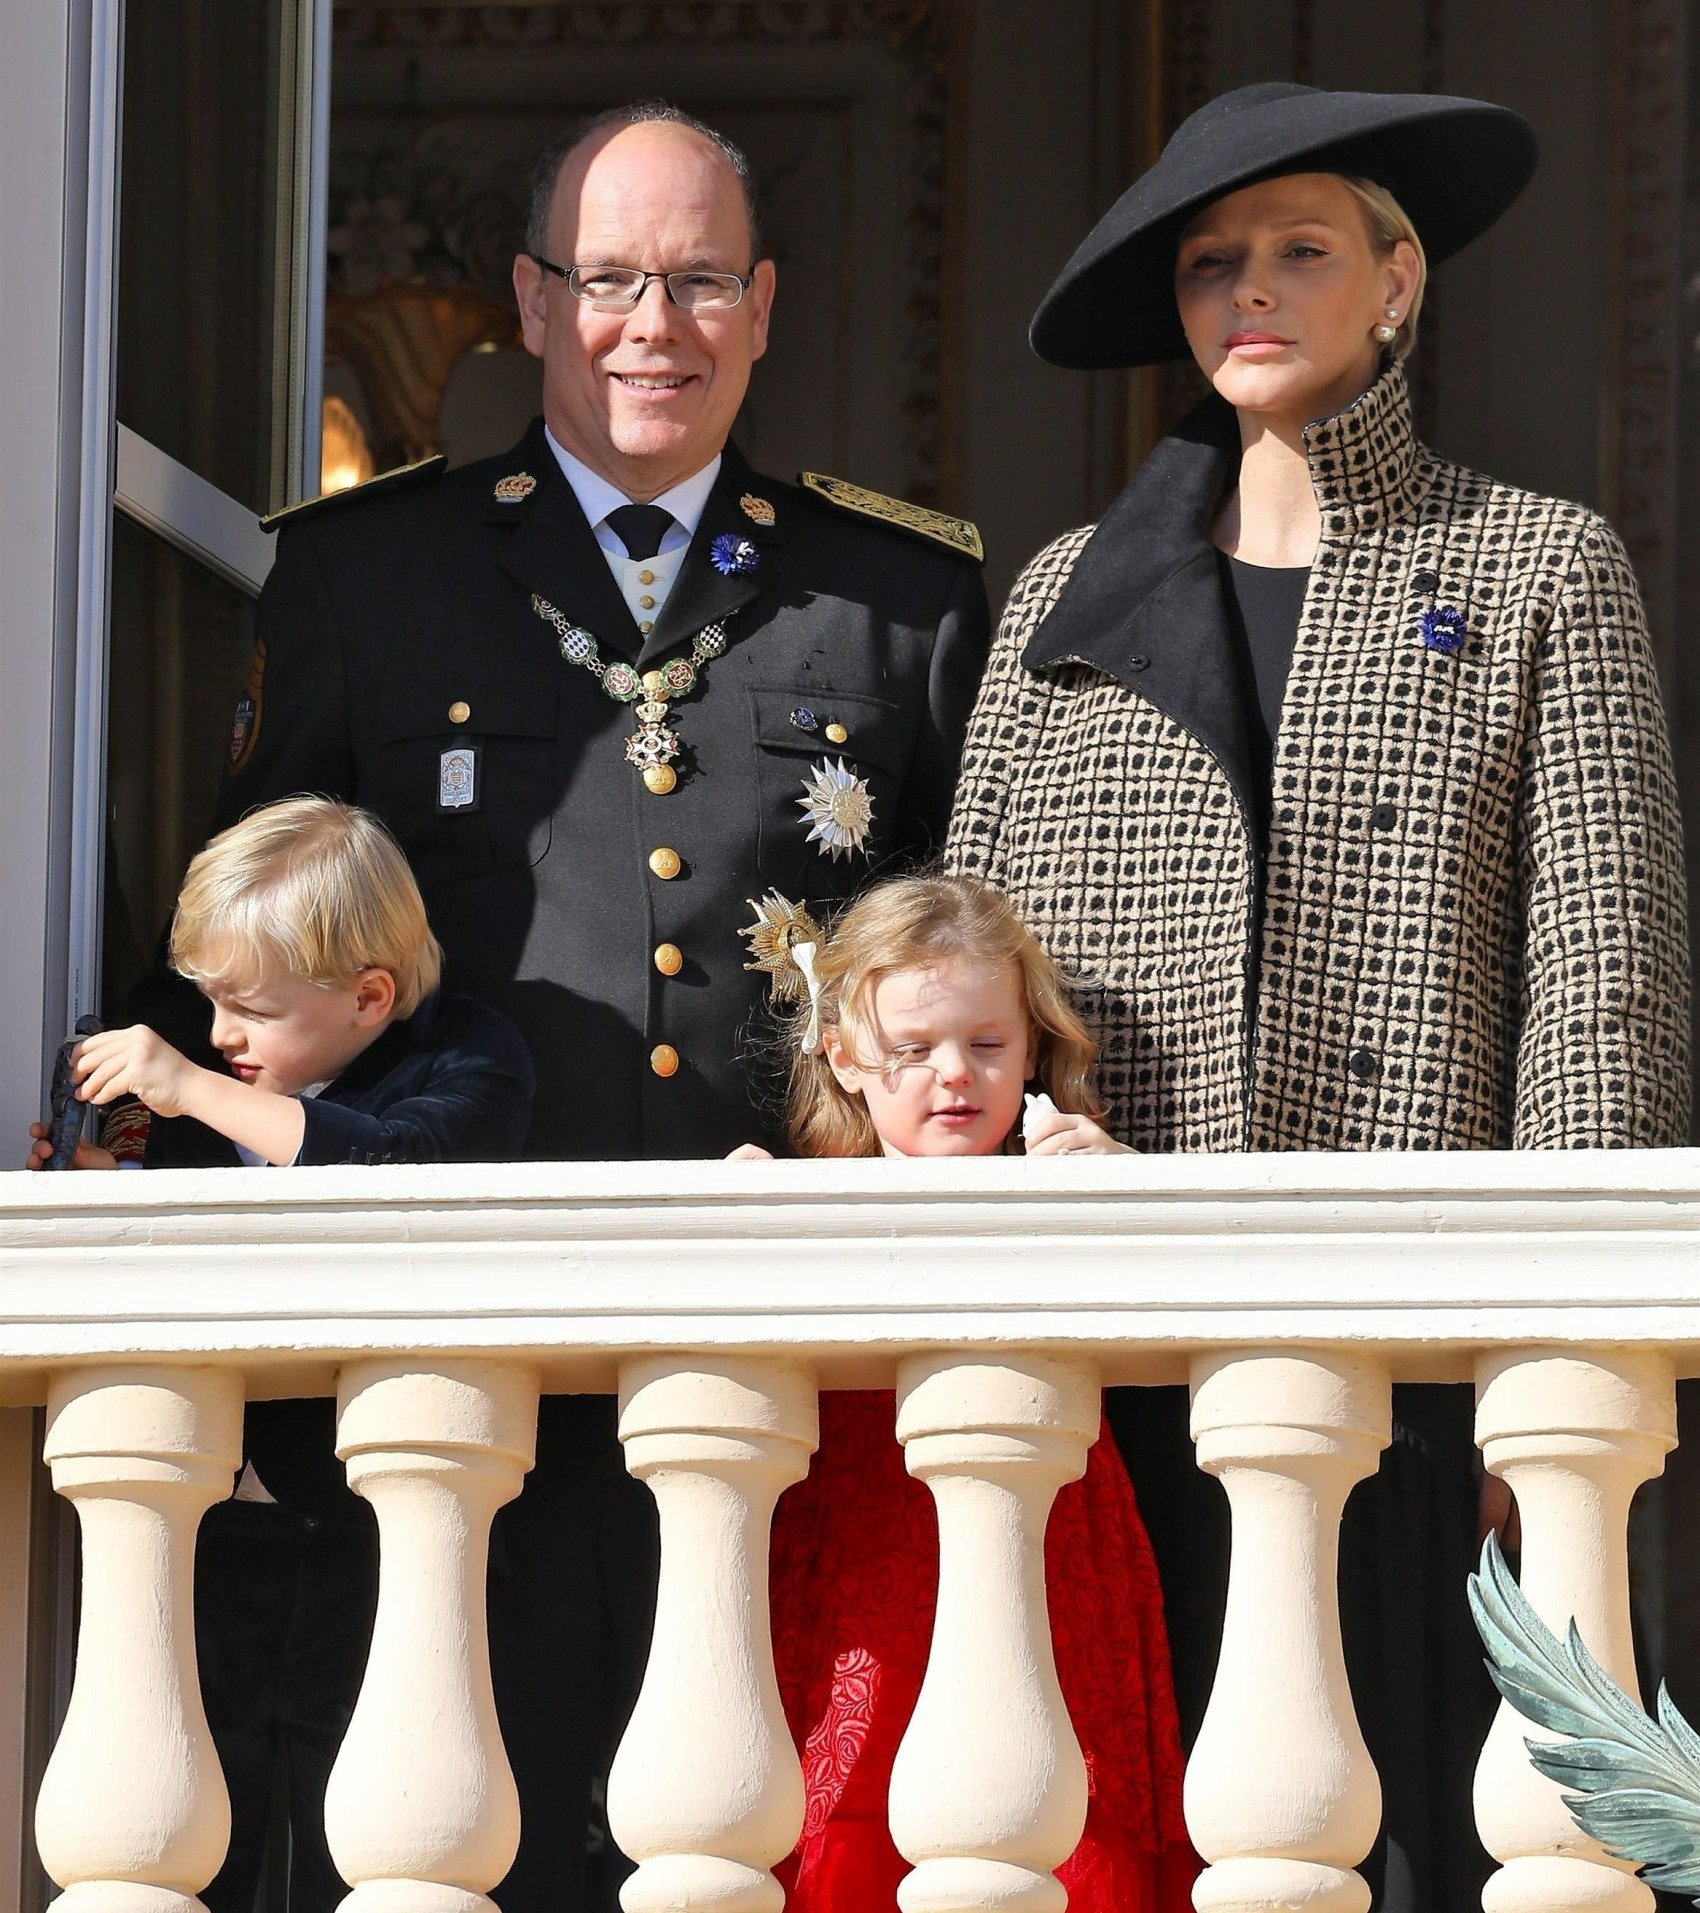 The Royal Family of Monaco poses on the balcony of the Palace for National Day